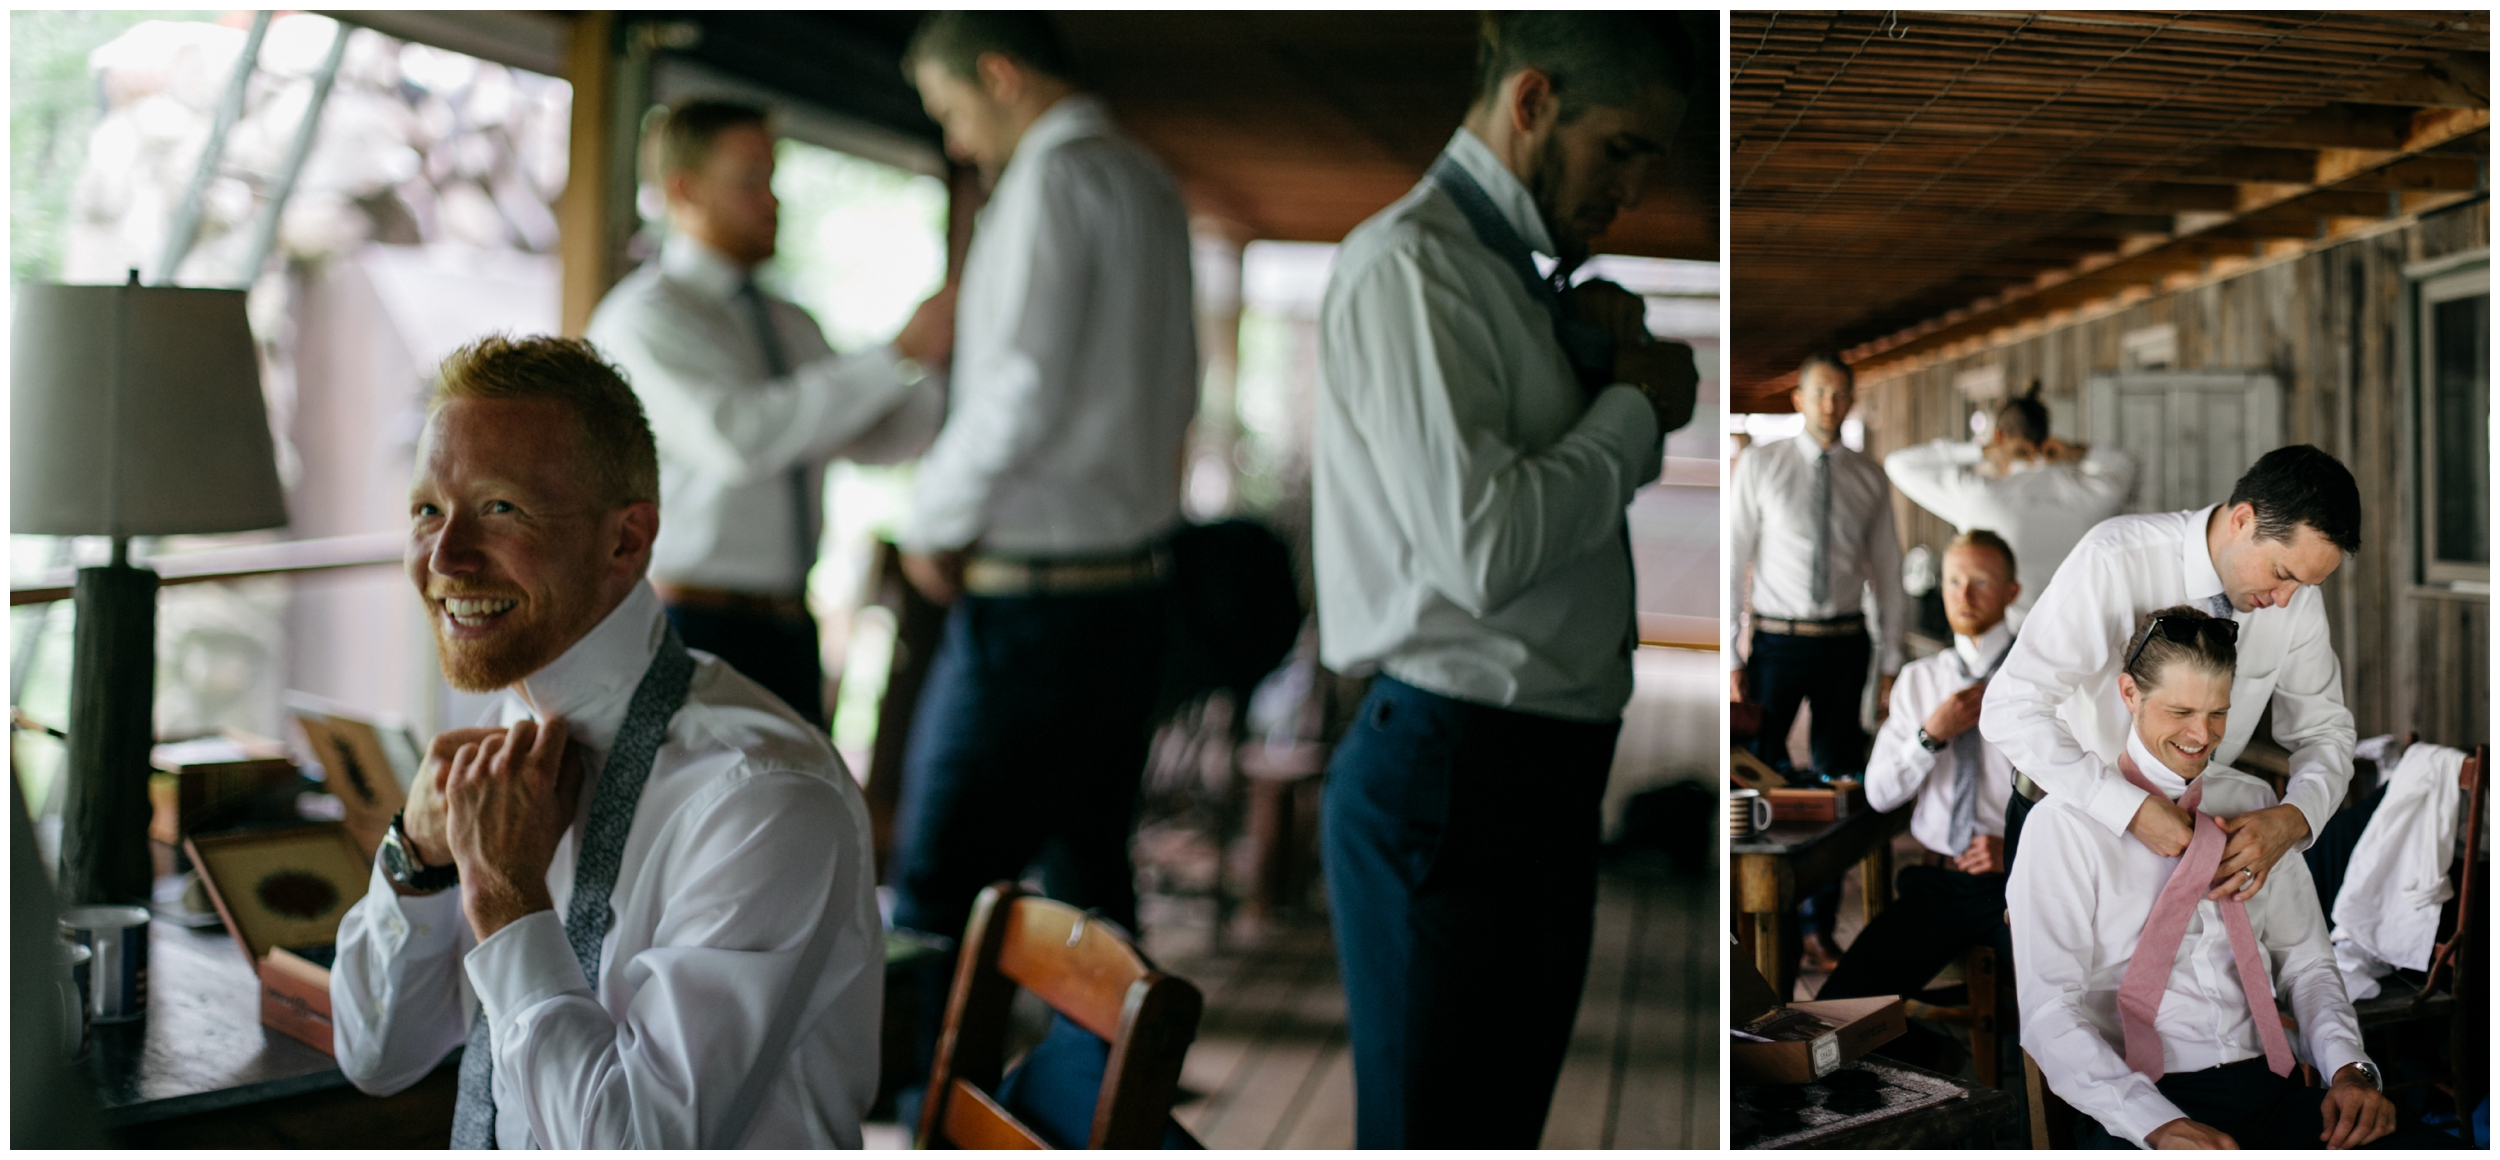 Groomsmen getting ready for wedding at the Whitely Creek Inn